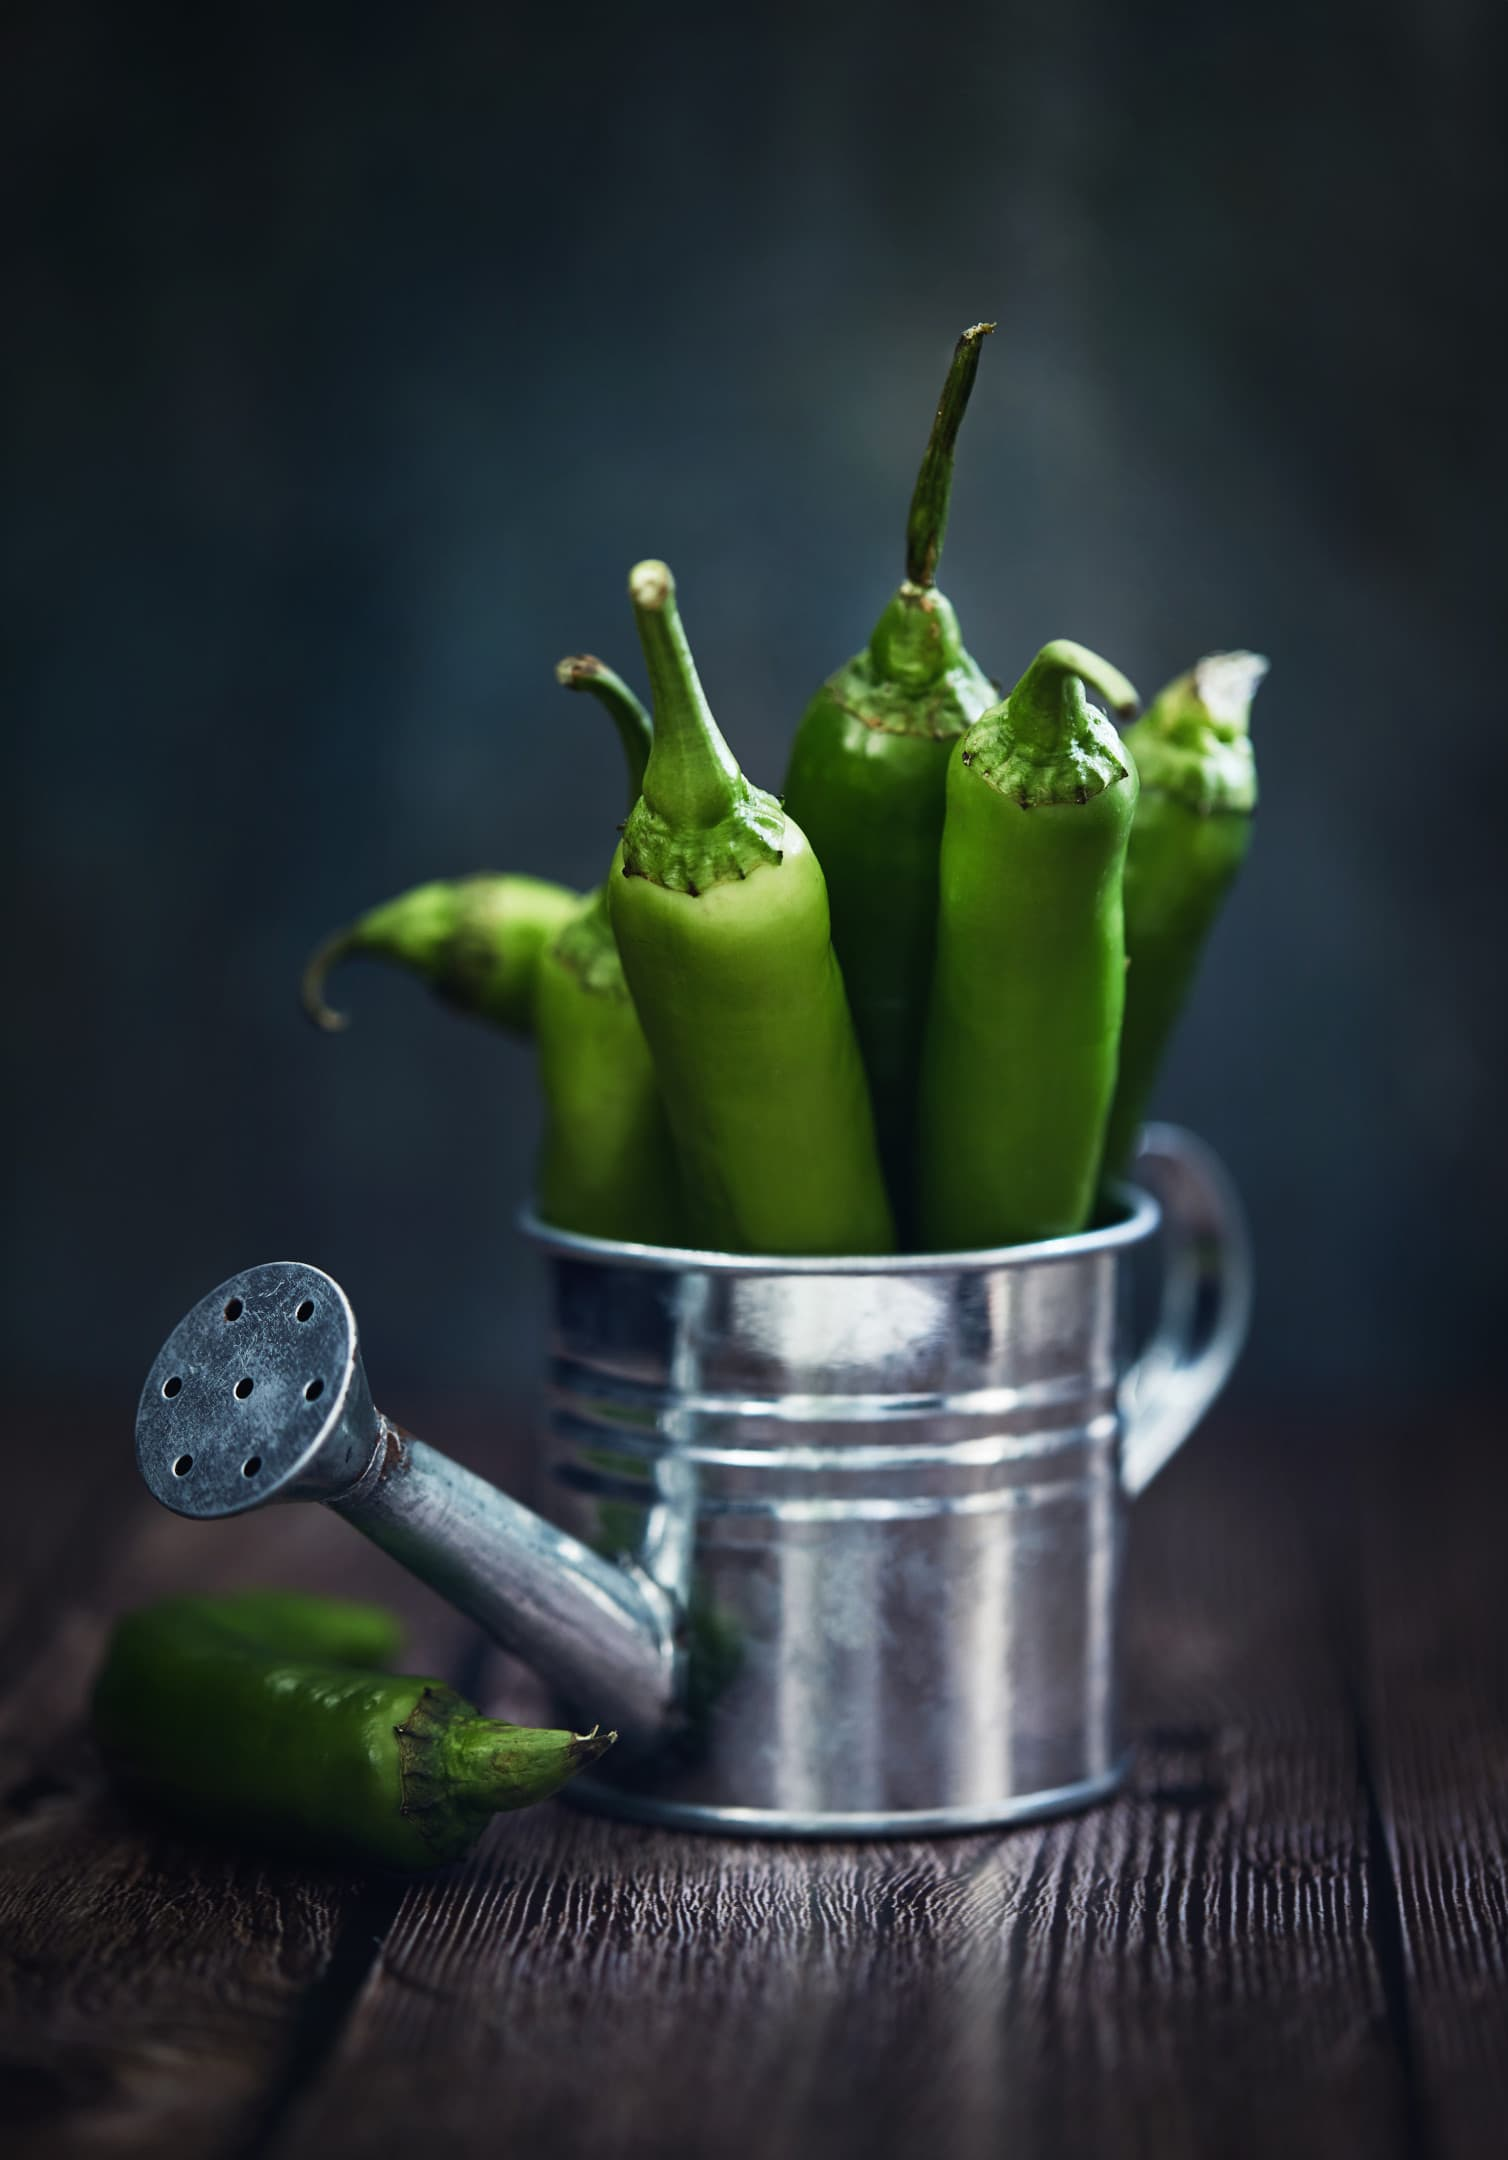 Green hot serrano peppers